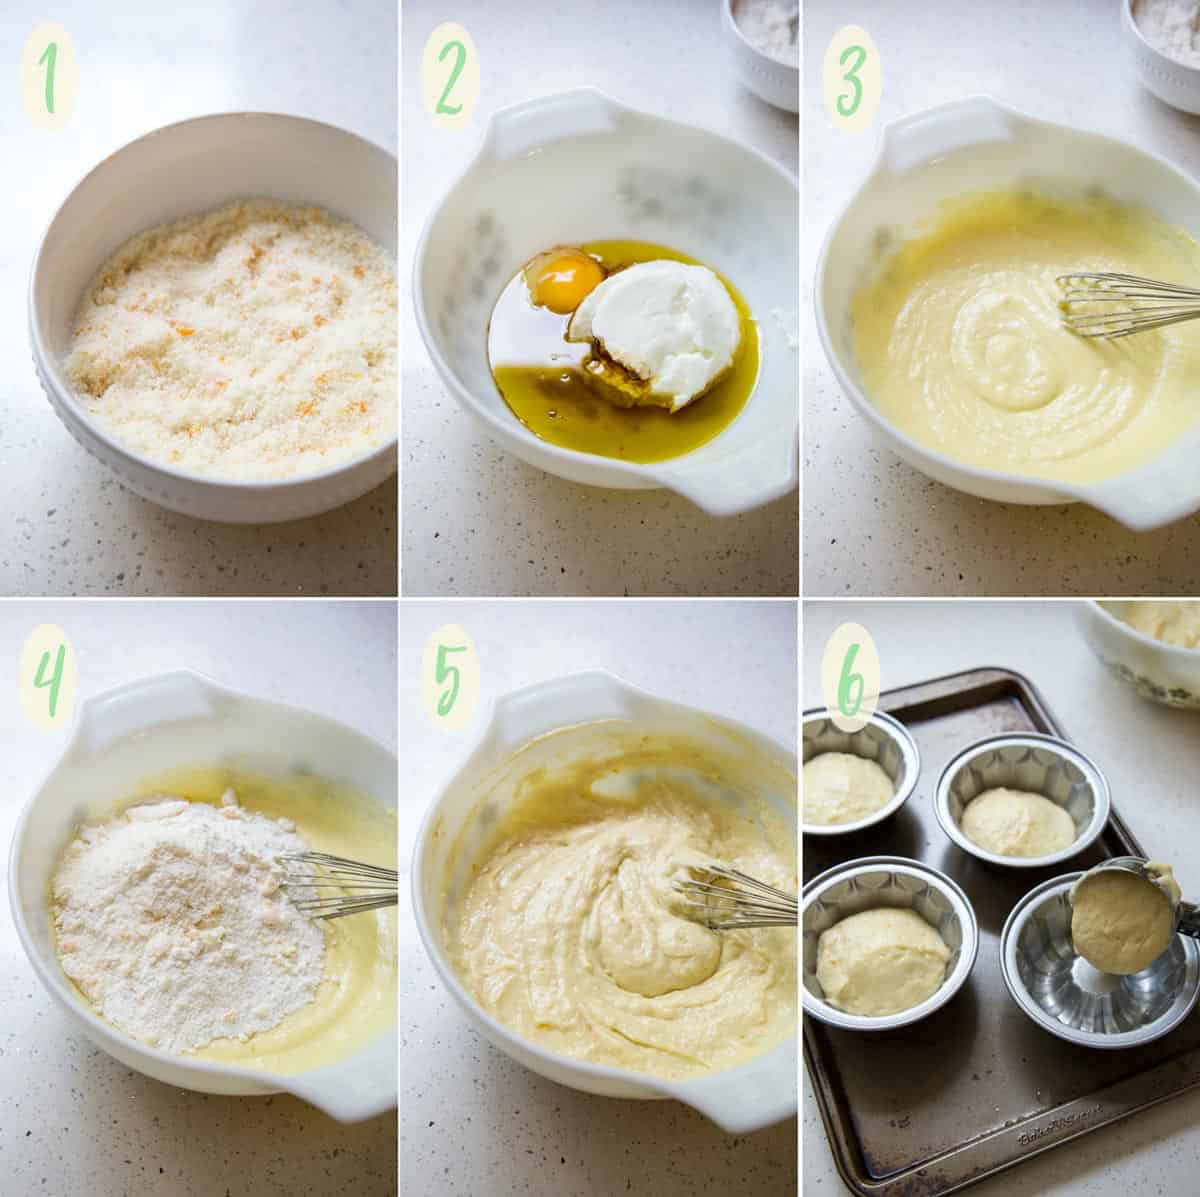 Collage of 6 photos showing how to make the tangerine cake batter